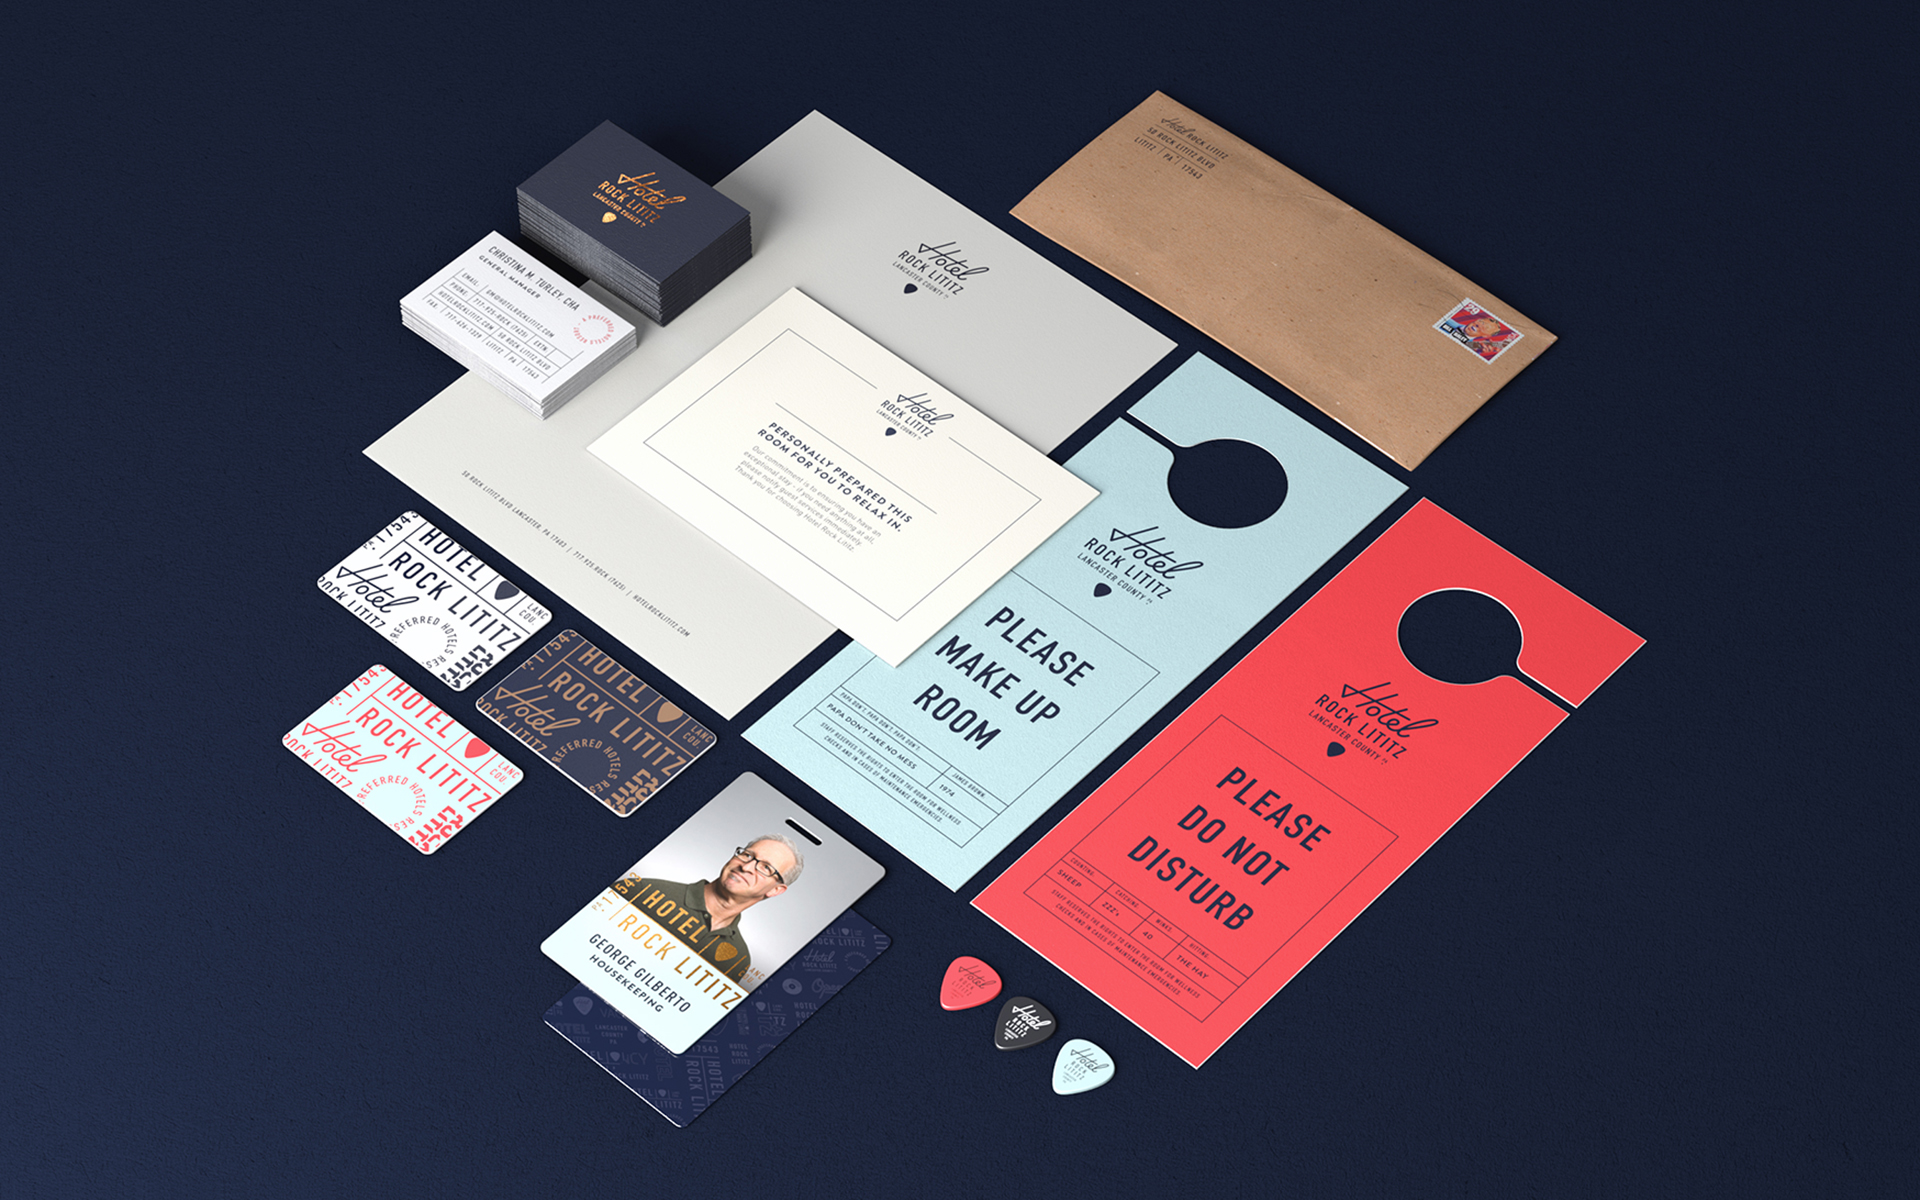 various Hotel Rock Lititz collateral including business cards, hotel keys, do not disturb signs and ID badges